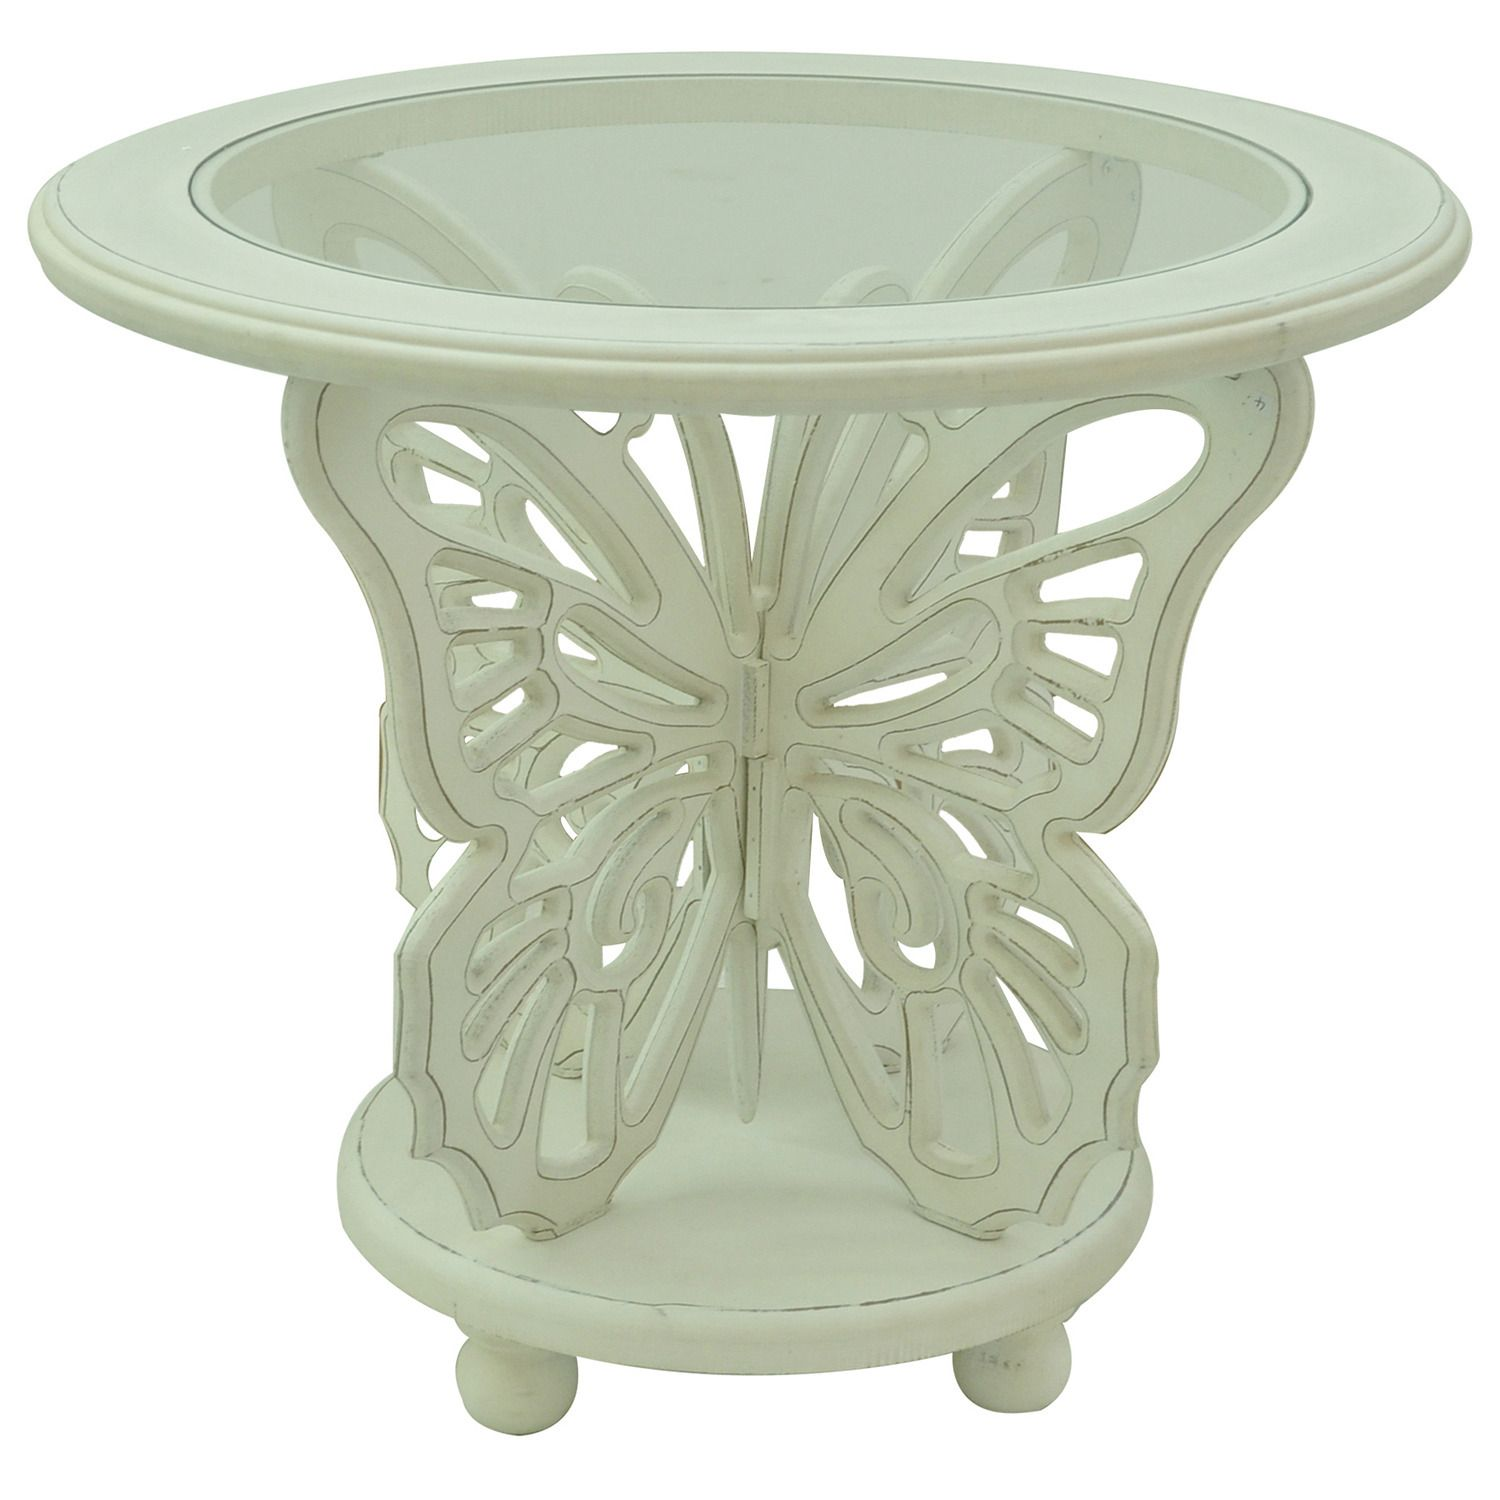 bethany white butterfly table crestview collection home gallery glass accent end tablecloth small drop leaf plastic patio and chairs short side high set entrance way tables bar